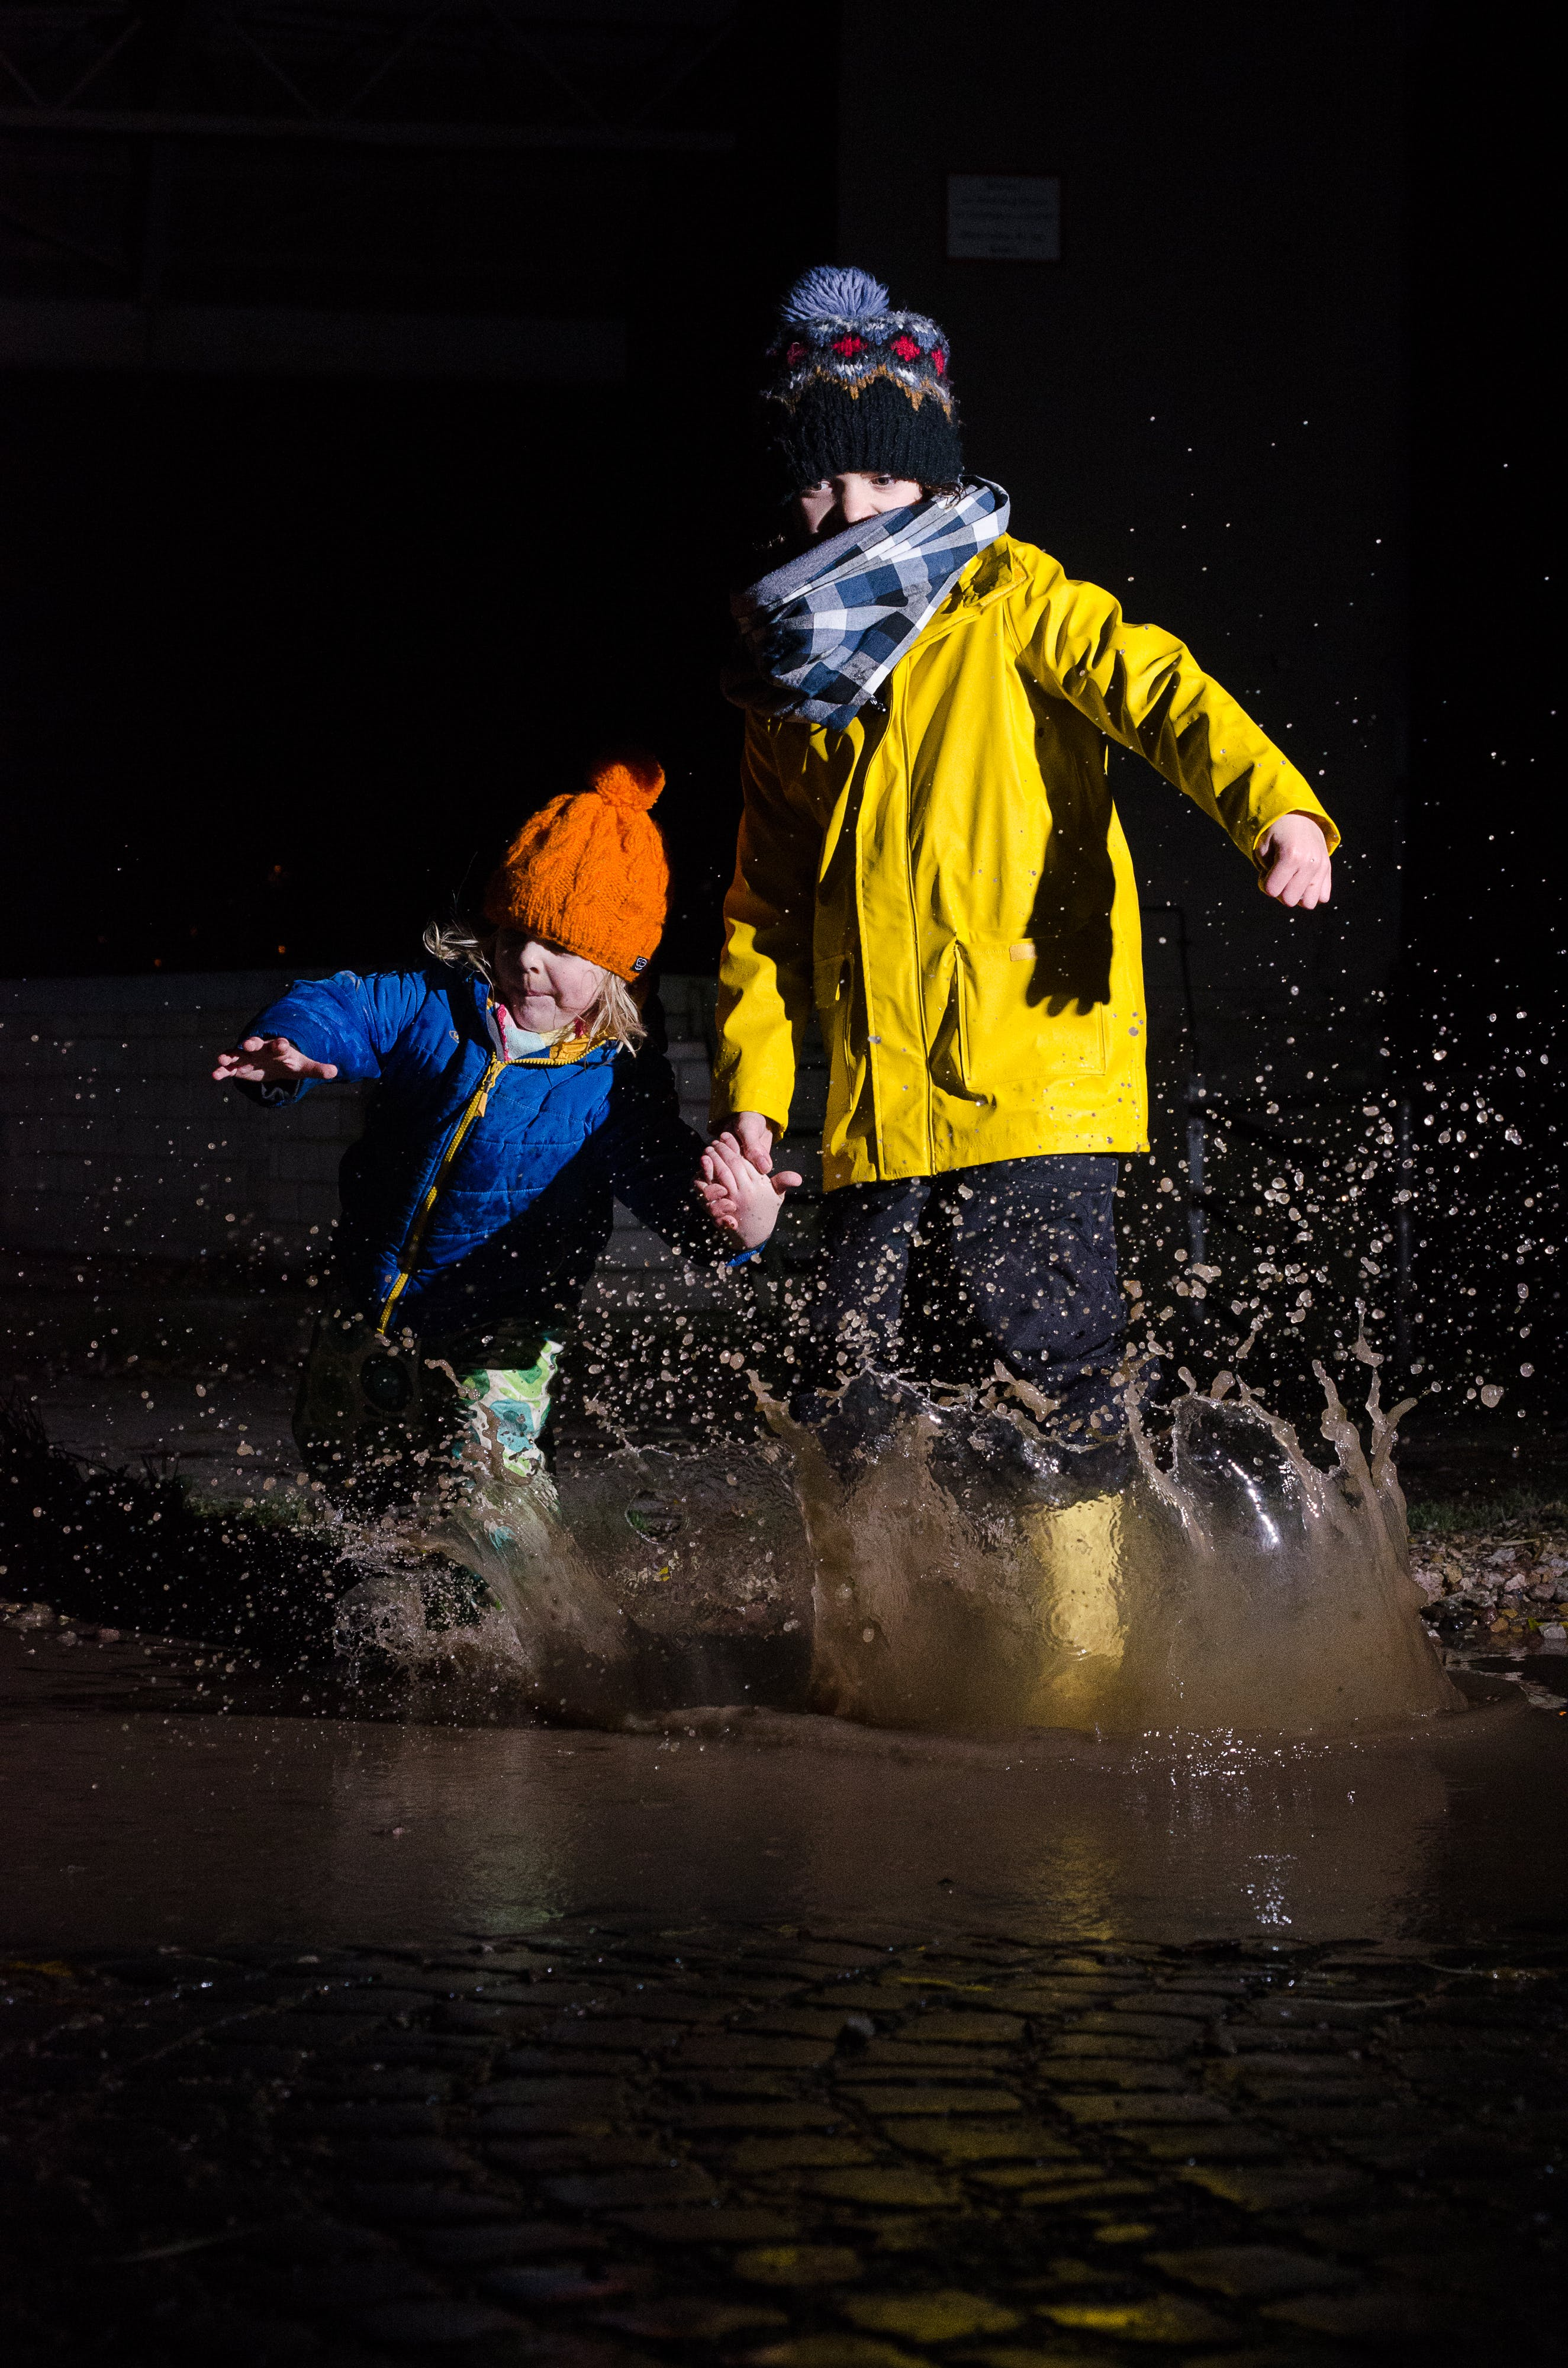 Free stock photo of family, kids, outside, puddle